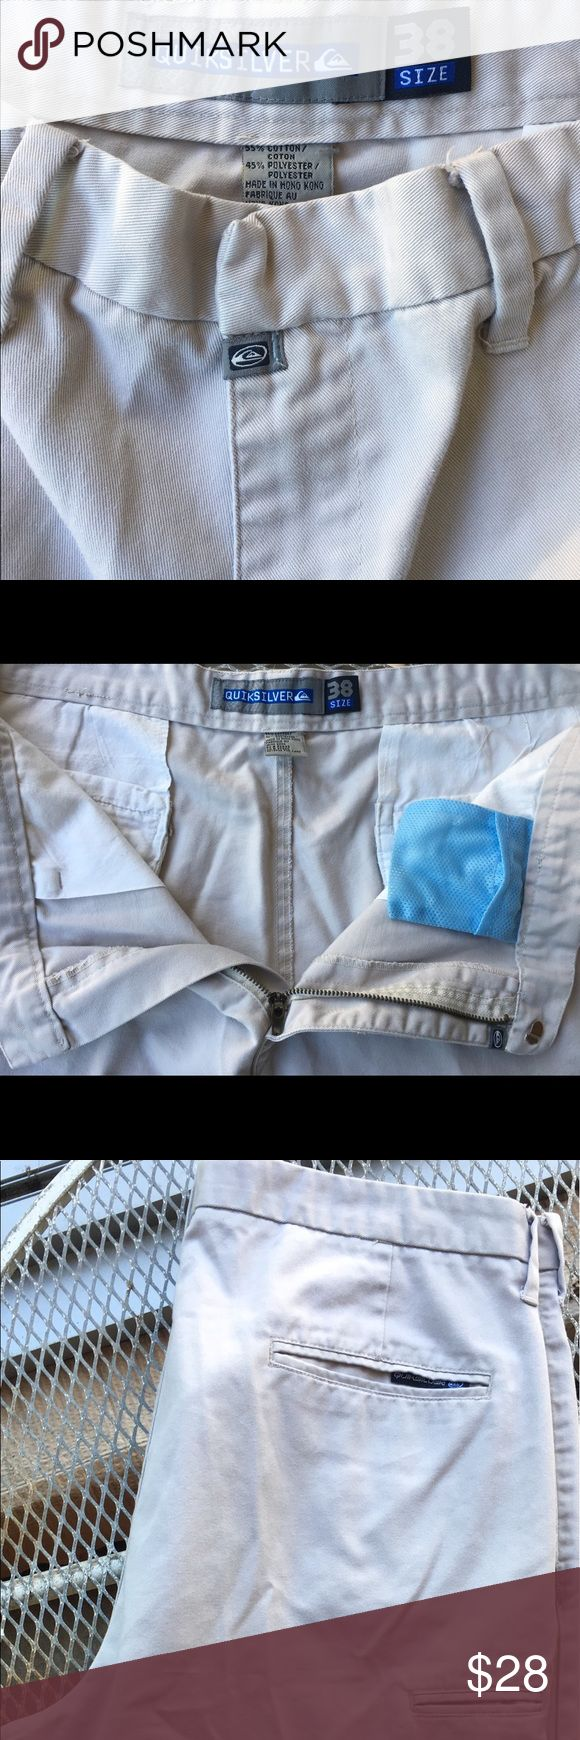 🇺🇸🎉Quiksilver Men's Khaki Shorts Great pair of Men's Quiksilver shorts. My husband was not happy that these did not fit him this year.  Minimal wash wear since only worn last season.  These will definitely be your favorite pair of shorts!  💰🛒BUNDLE AND SAVE!!  BUNDLE 3️⃣ OR MORE AND I WILL INCREASE YOUR SAVINGS DISCOUNT TO 25% OFF!!!💵📦 Quiksilver Shorts Flat Front